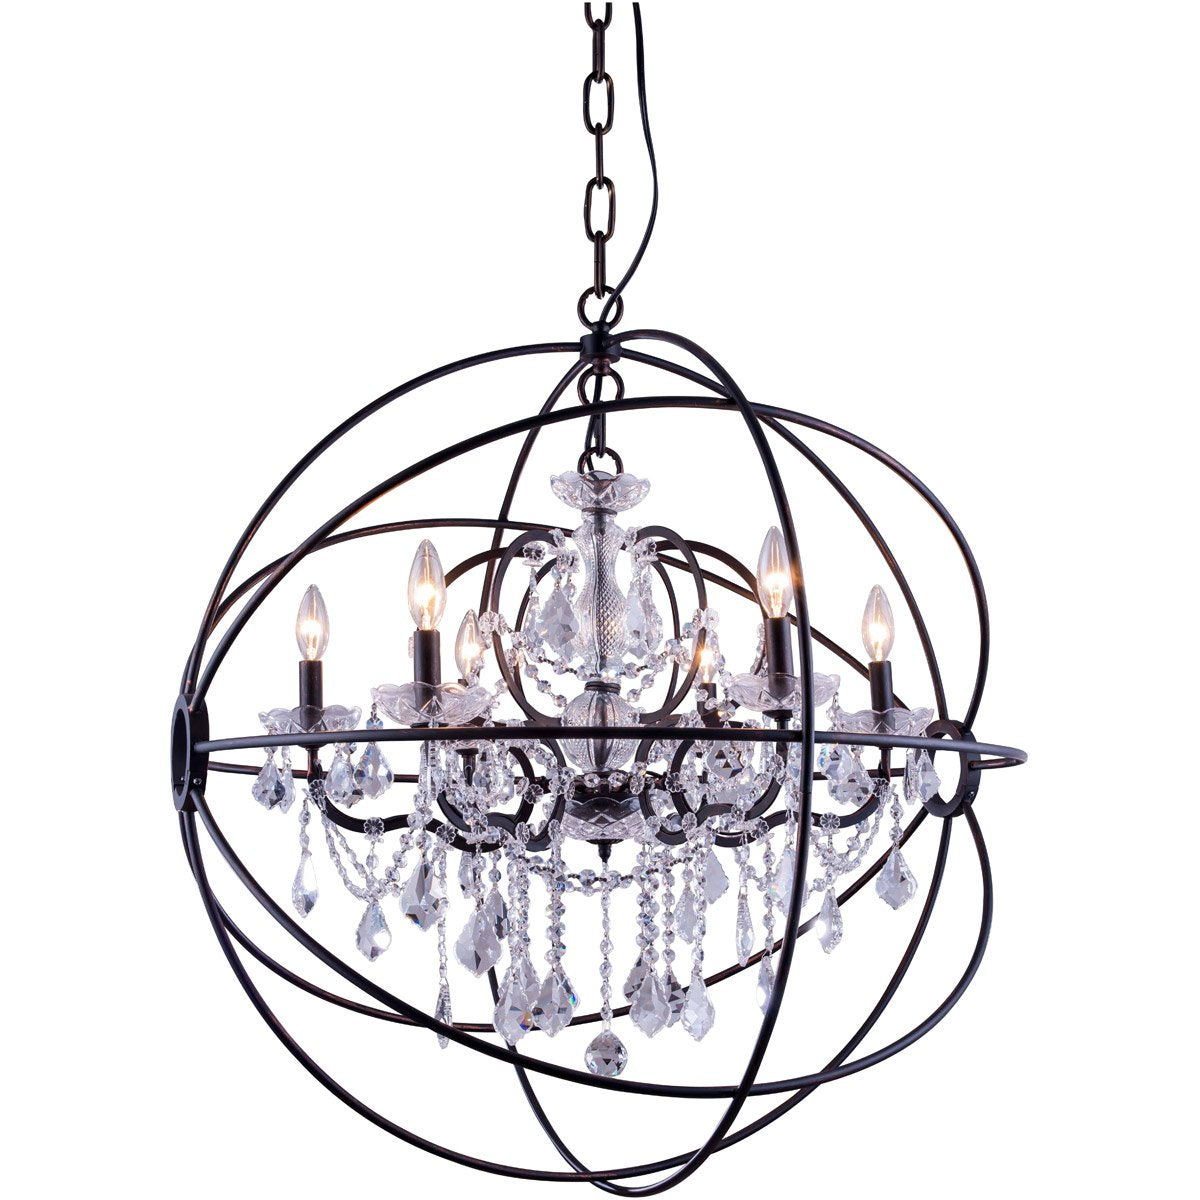 Geneva 32 Crystal Pendant Chandelier With 6 Lights - Dark Bronze Finish And Clear Crystal Chandelier